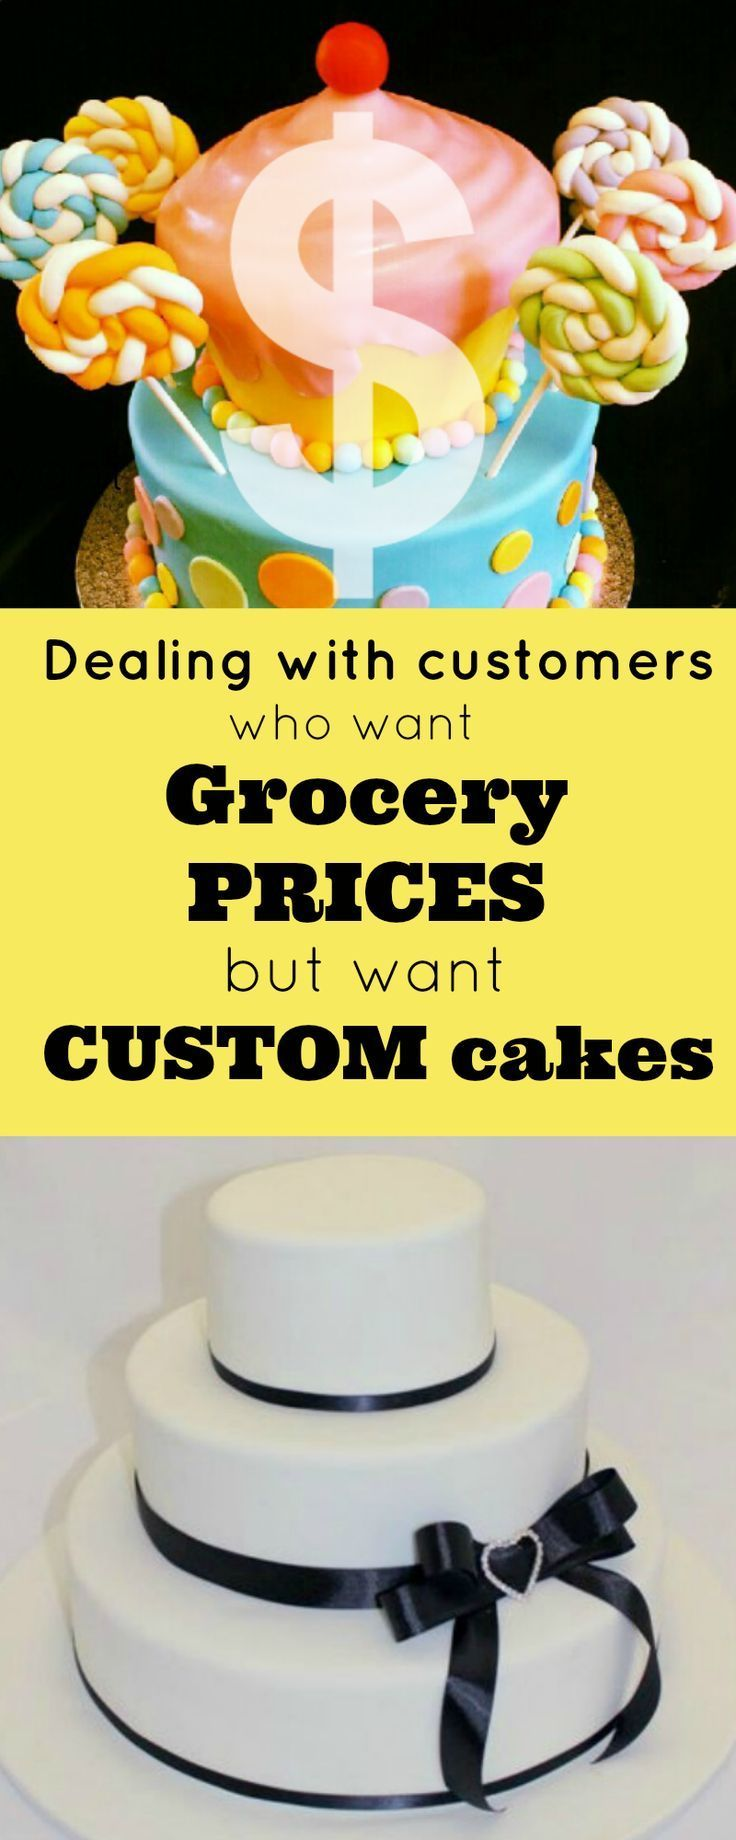 Dealing With Customers Who Want Grocery Prices But Want Custom Cakes: How to deal with customers who want to pay dirt cheap grocery store prices but want the fancy-smanchy custom cakes. | http://angelfoods.net/dealing-with-customers-who-want-grocery-prices-but-want-custom-cakes/